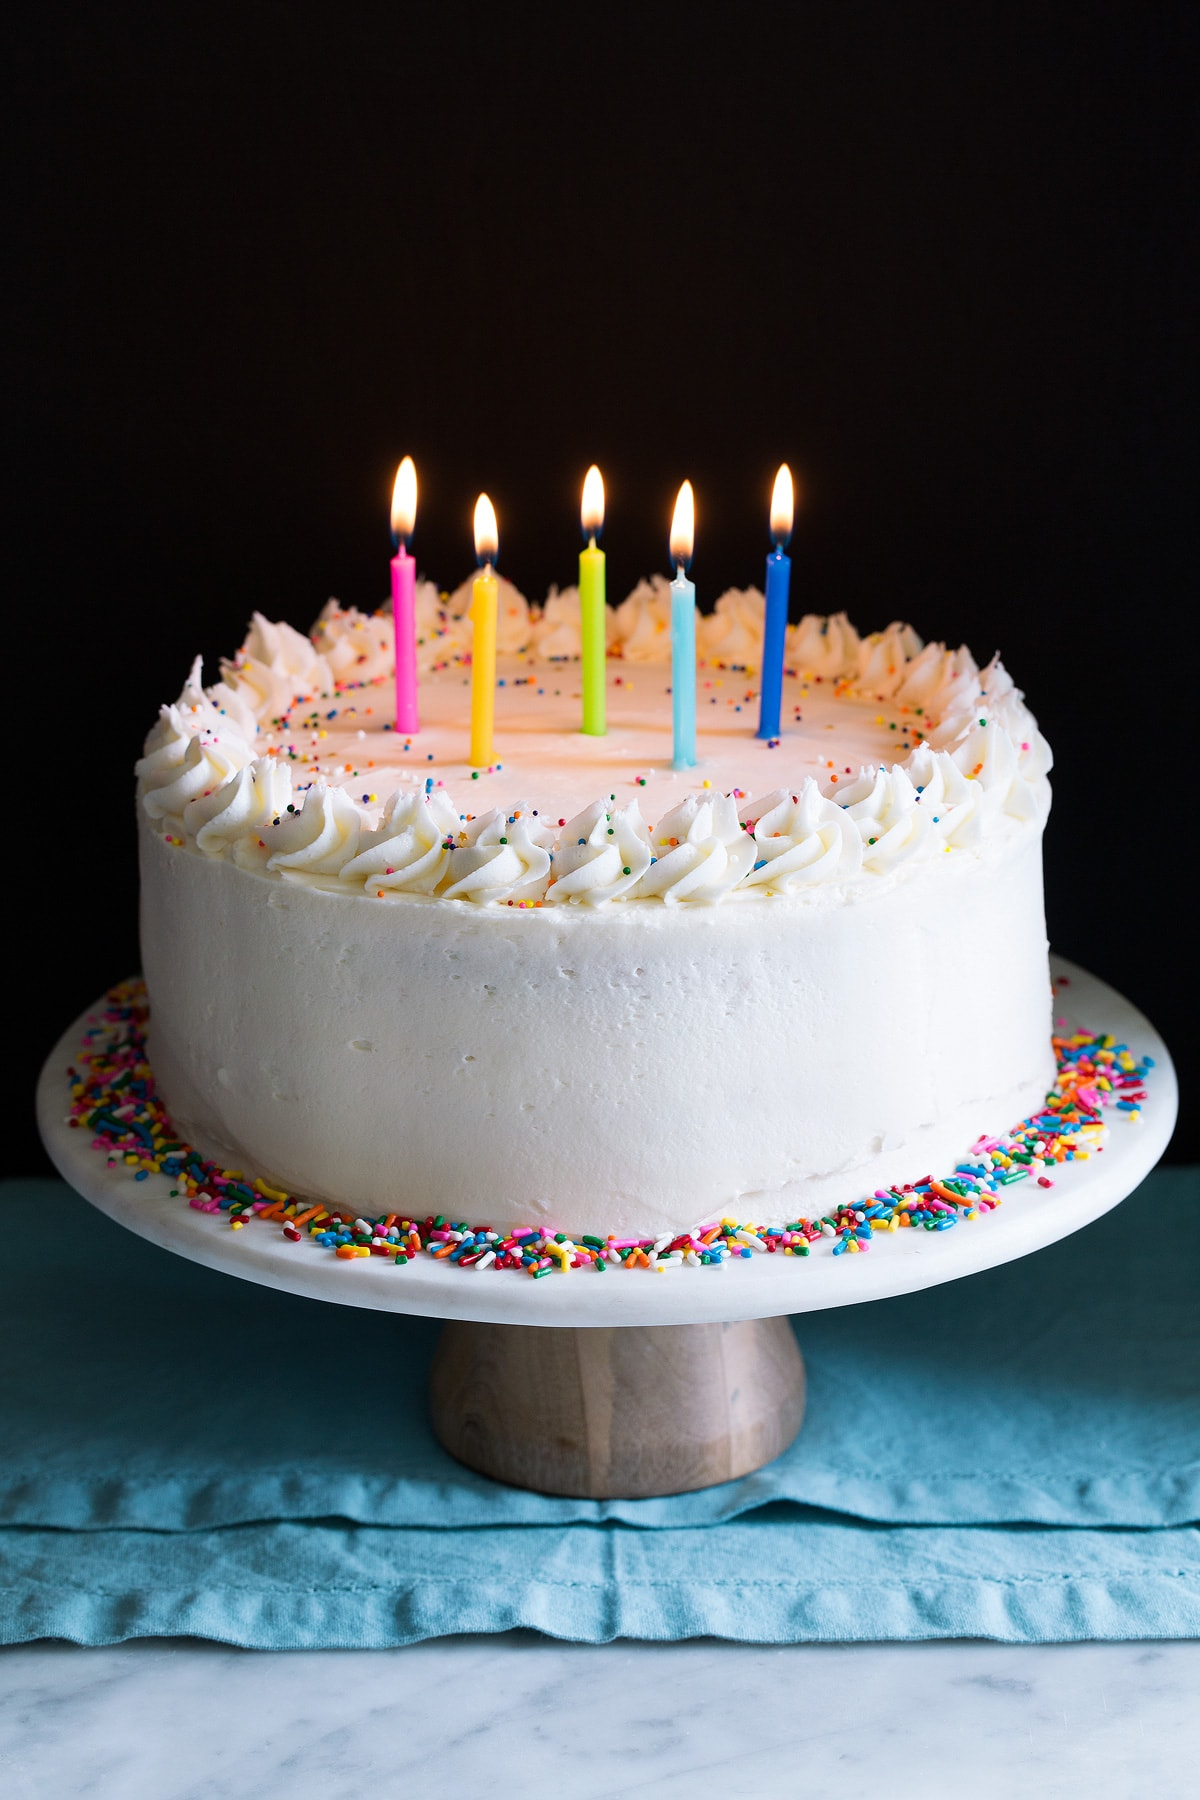 Remarkable Best Birthday Cake Recipe Funfetti Cake Cooking Classy Funny Birthday Cards Online Elaedamsfinfo